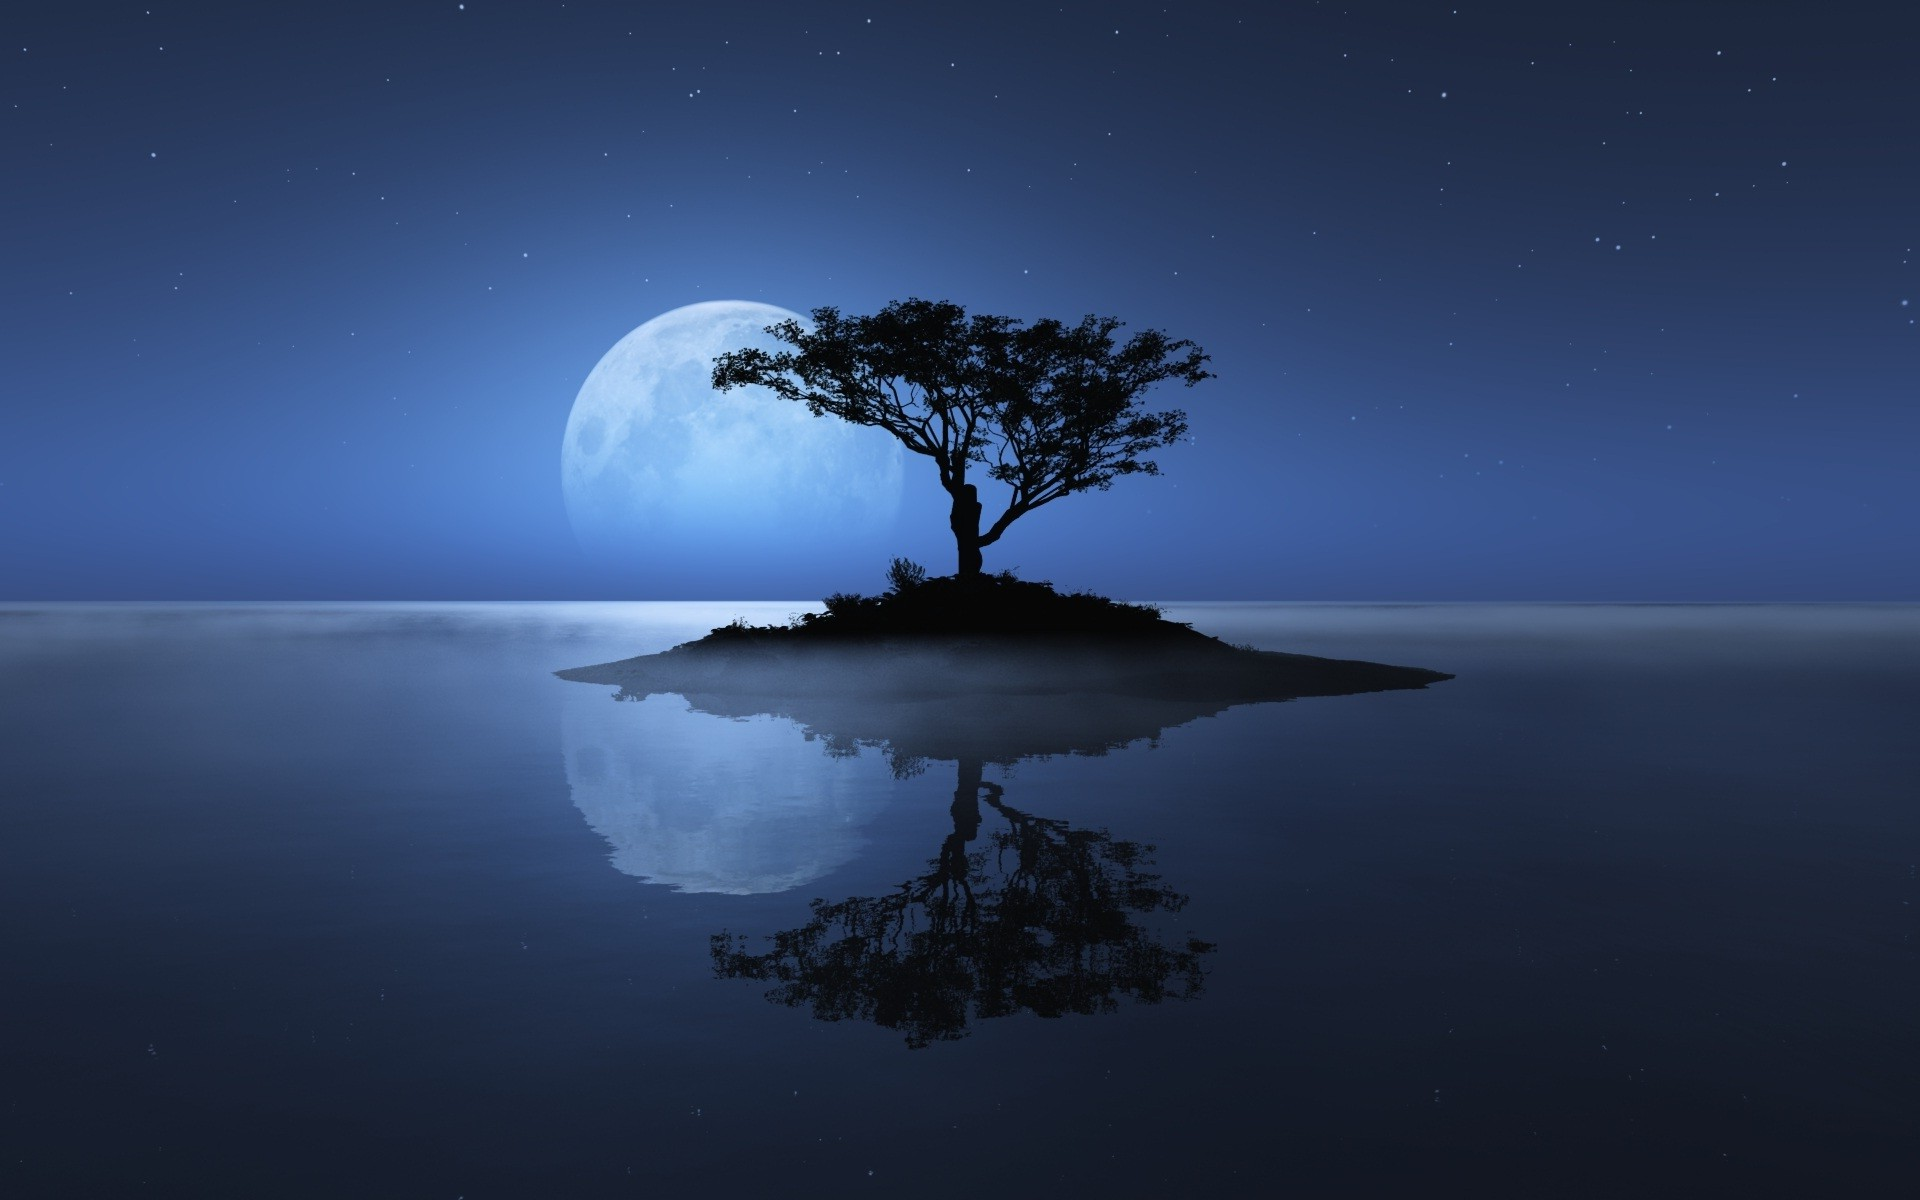 Buddha Wallpaper Hd For Iphone Nature Landscape Night Trees Water Moon Stars Sea